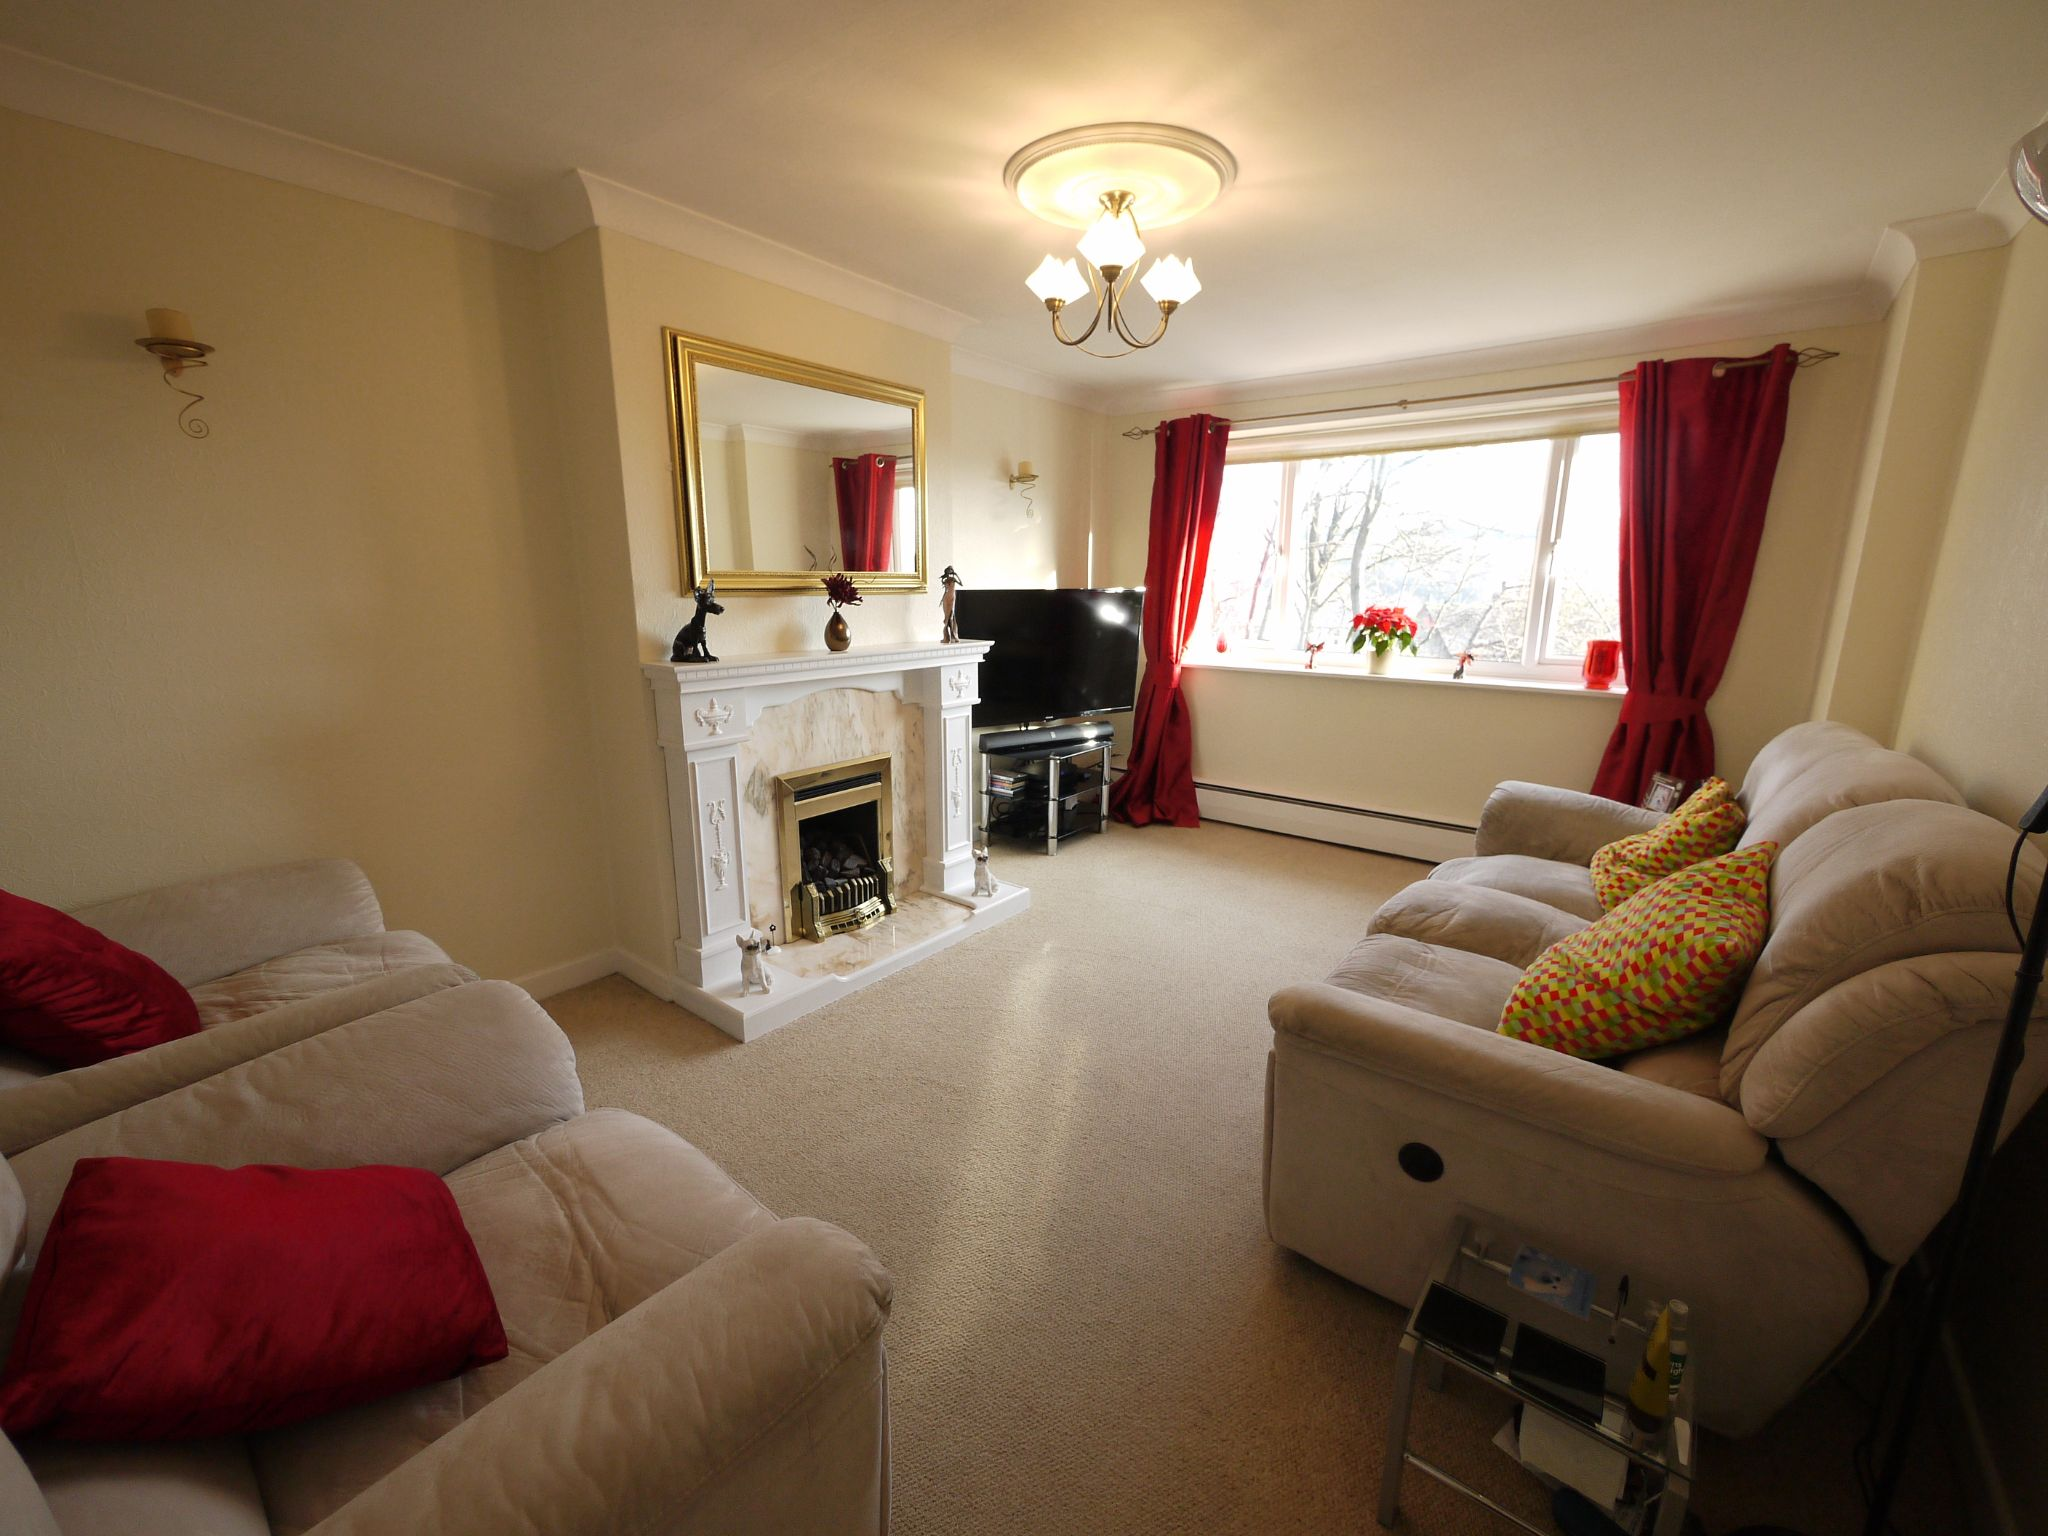 4 bedroom semi-detached house SSTC in Brighouse - Lounge.